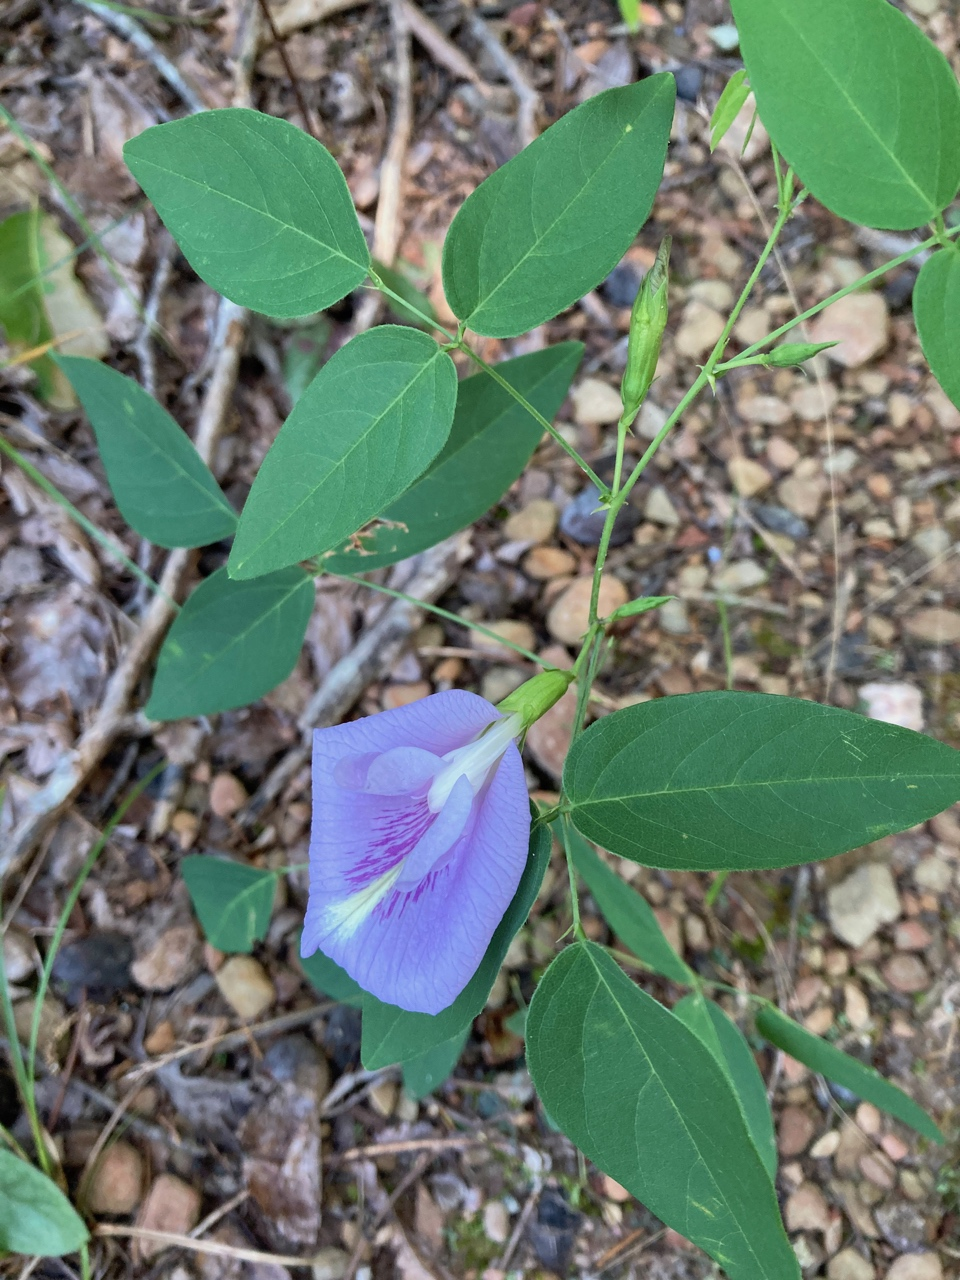 The Scientific Name is Clitoria mariana. You will likely hear them called Butteryfly Pea. This picture shows the Plant showing trifoliate leaves, developing flower buds, and opened flower with a more typical flower color of Clitoria mariana